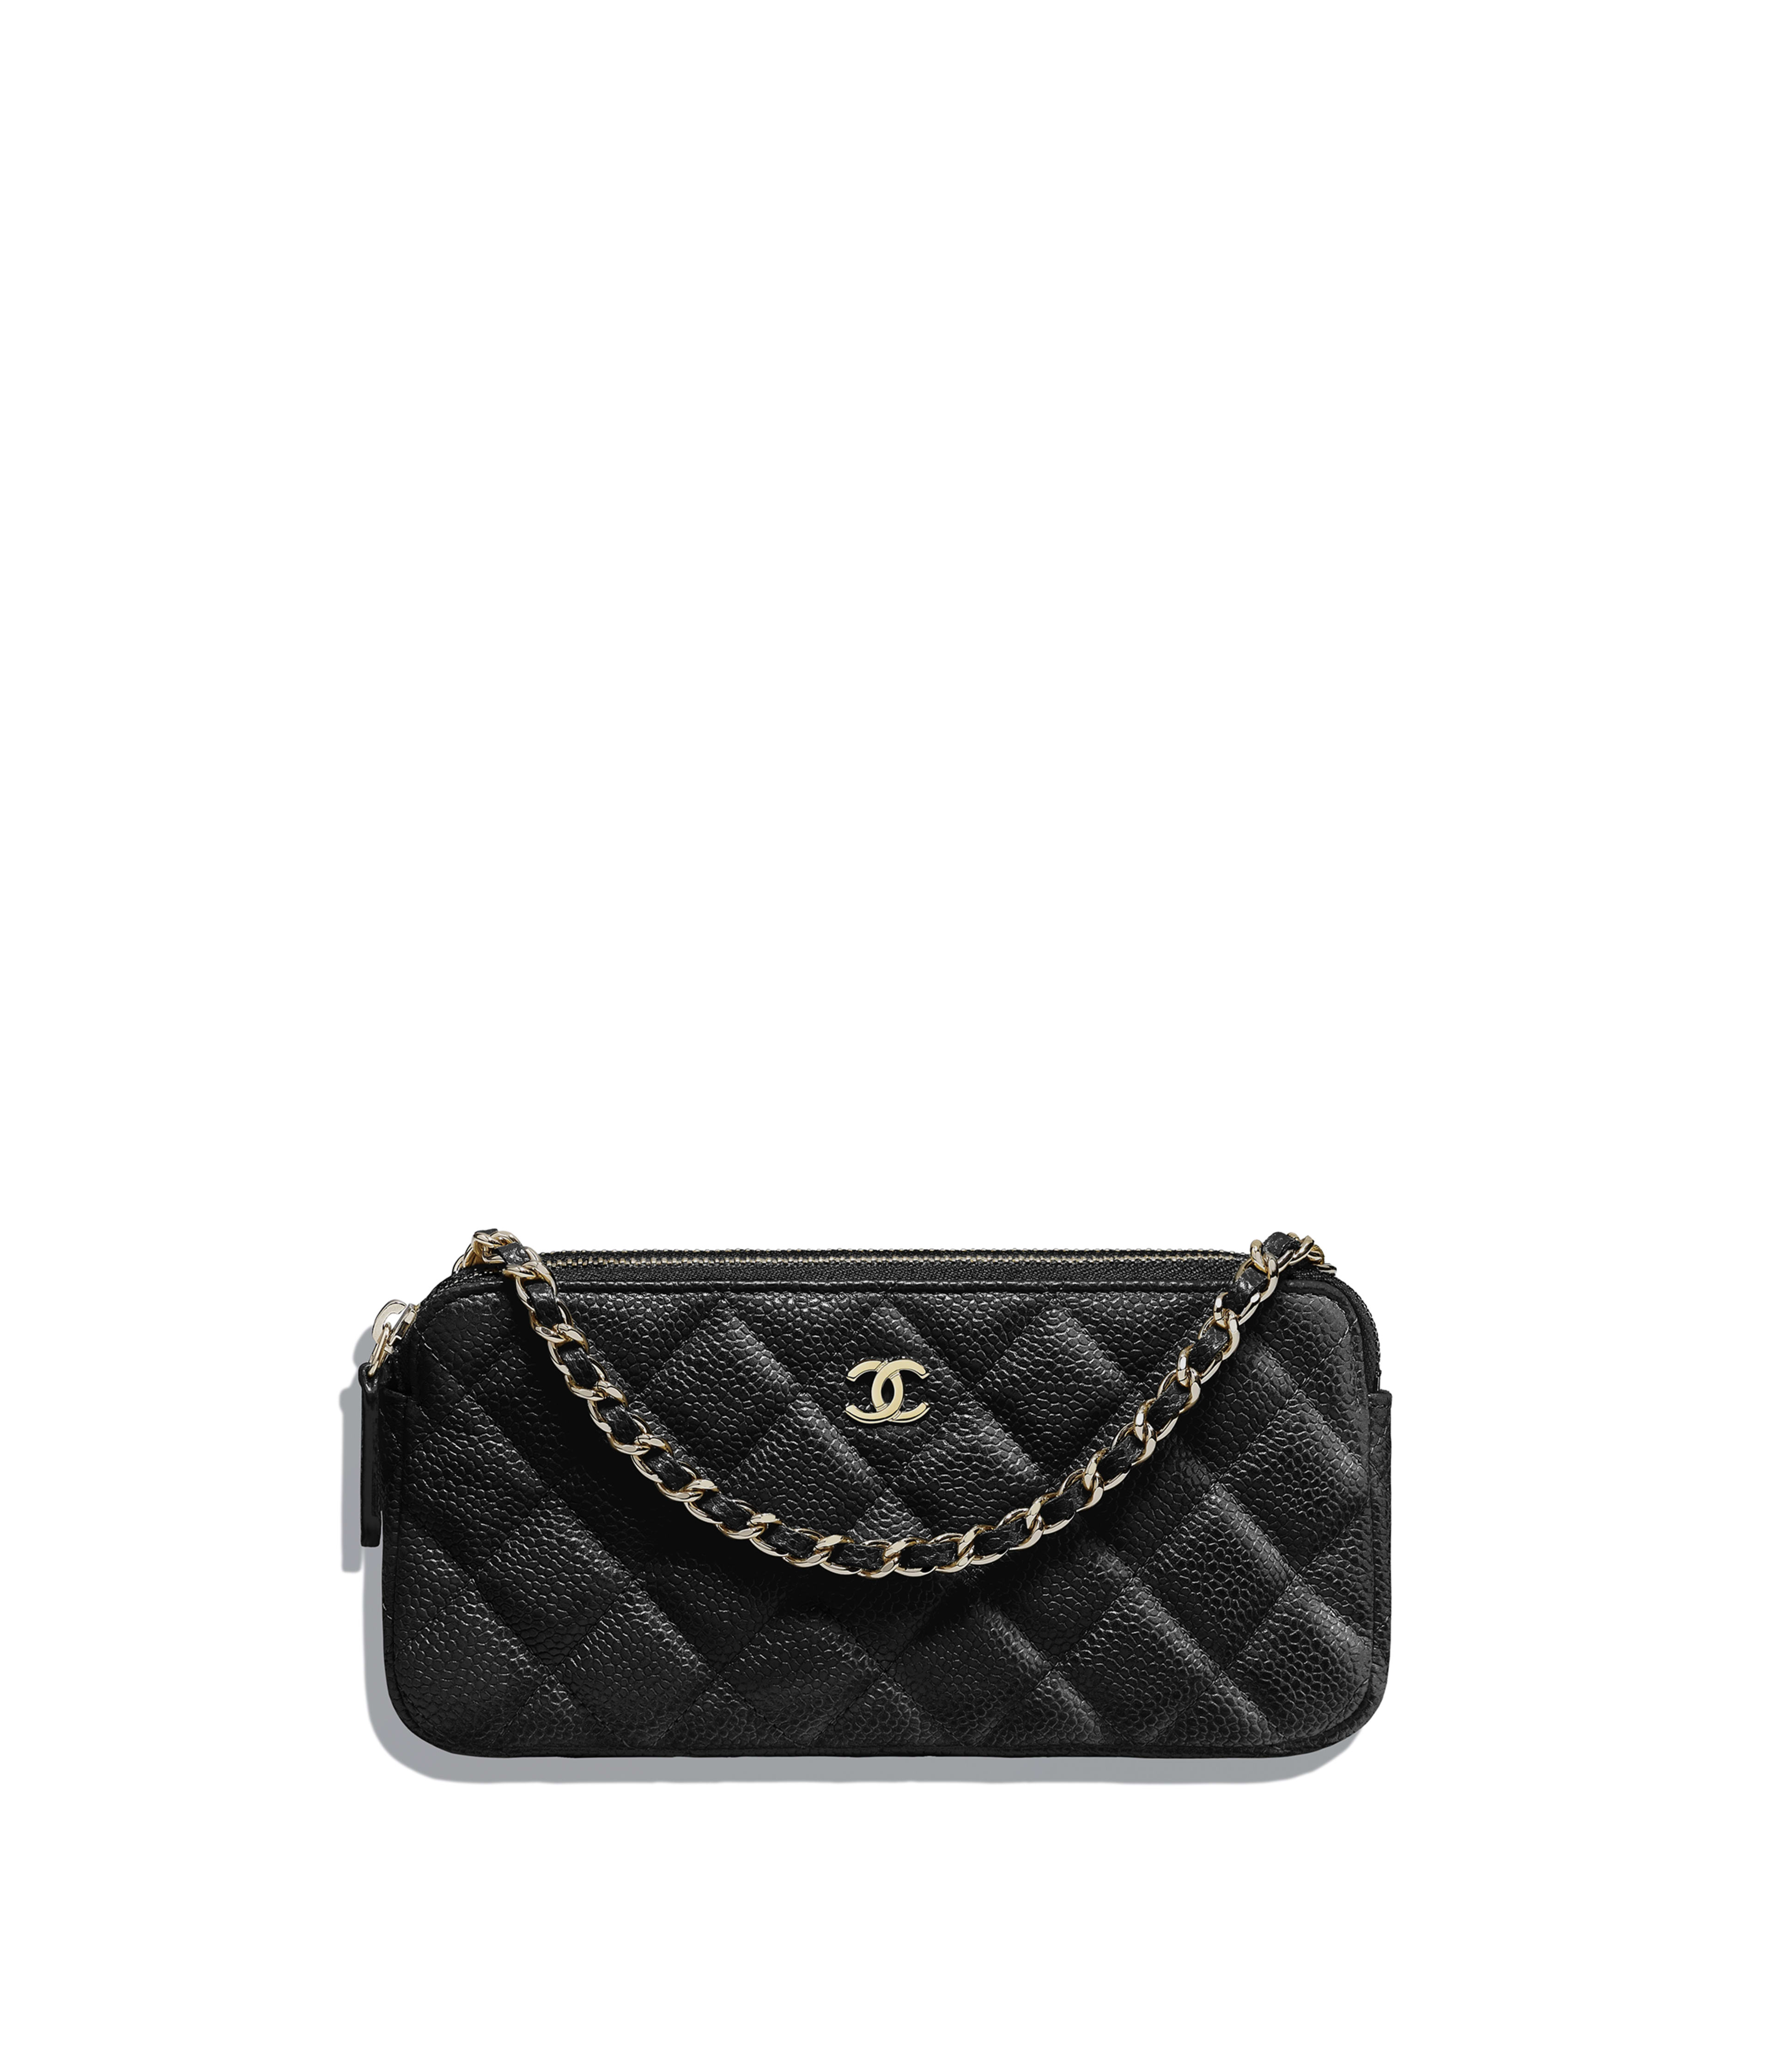 676dc7e445b2 Classic Clutch with Chain Grained Calfskin & Gold-Tone Metal, Black Ref.  A82527Y83470C3906